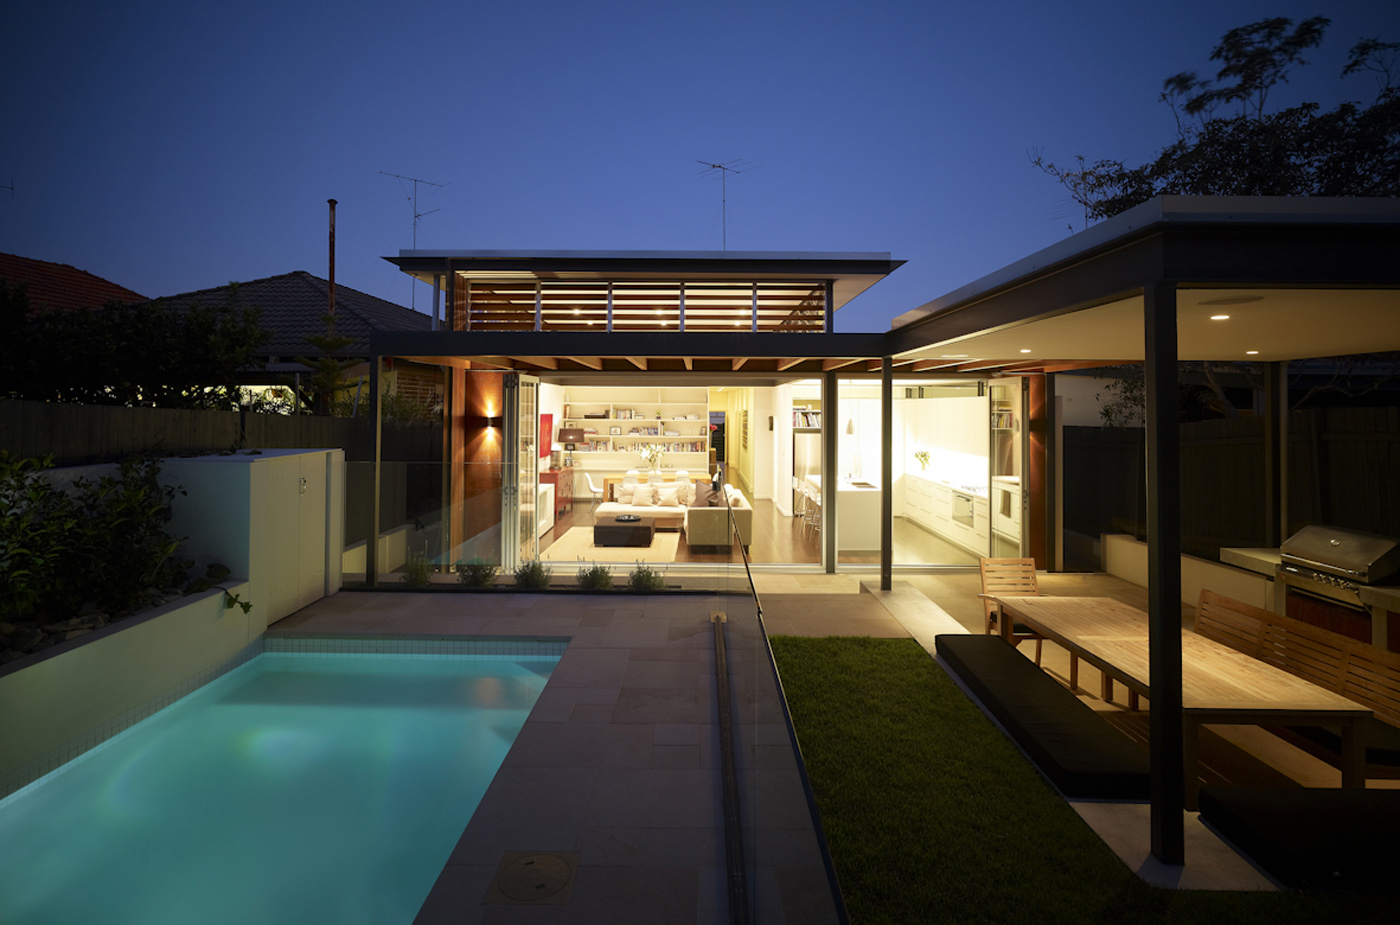 Lambert House by Sydney award winning residential architecture office Sam Crawford Architects. View to western facade at twilight